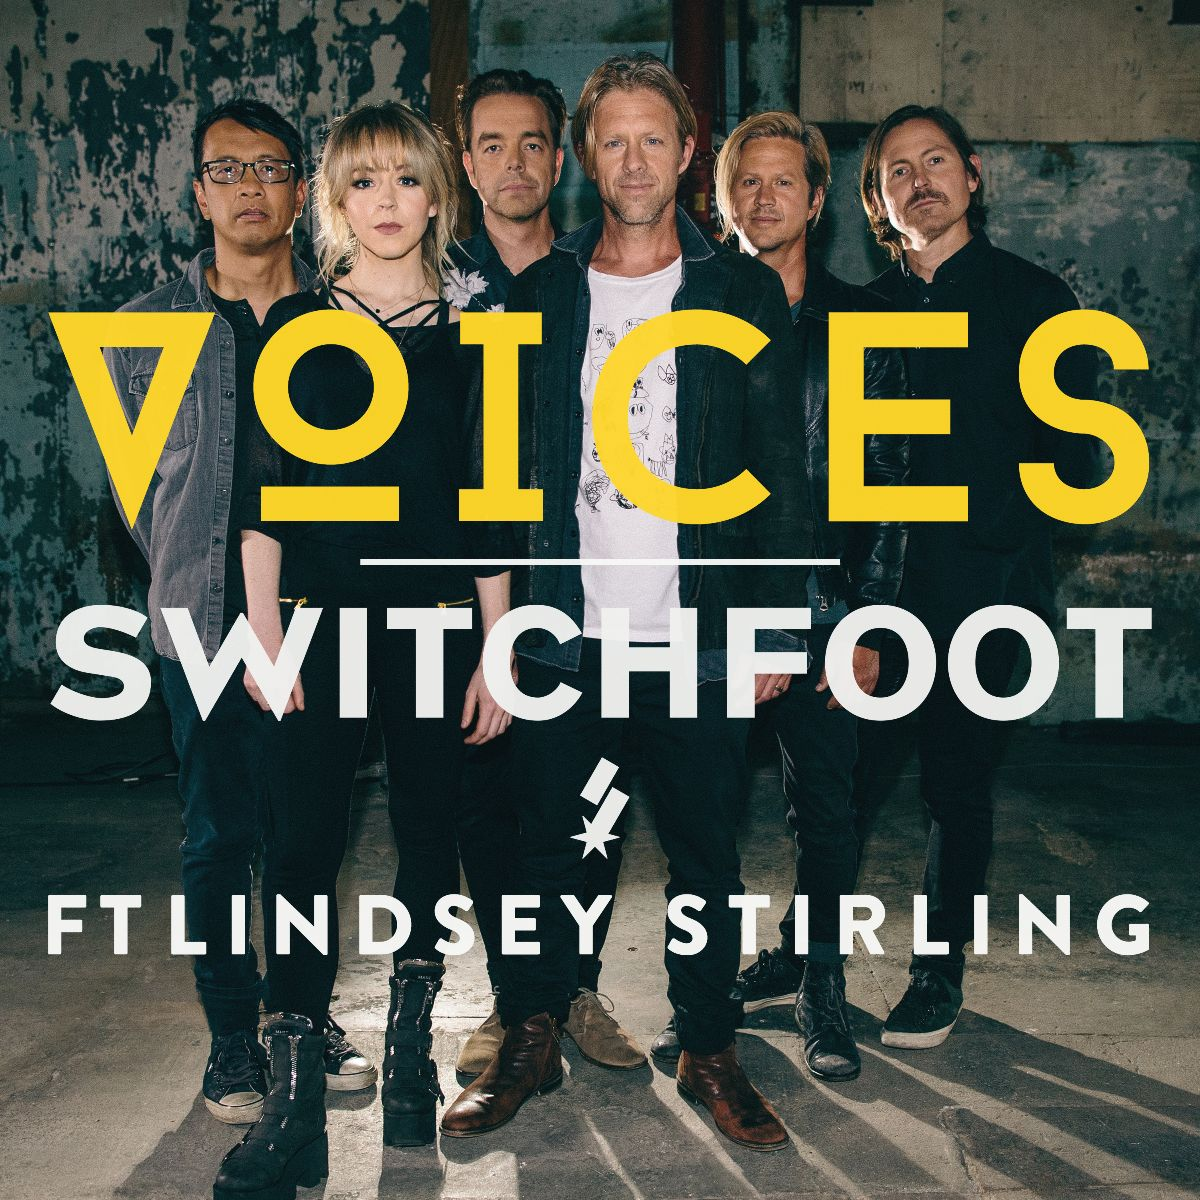 Switchfoot - Voices Ft Lindsey Stirling